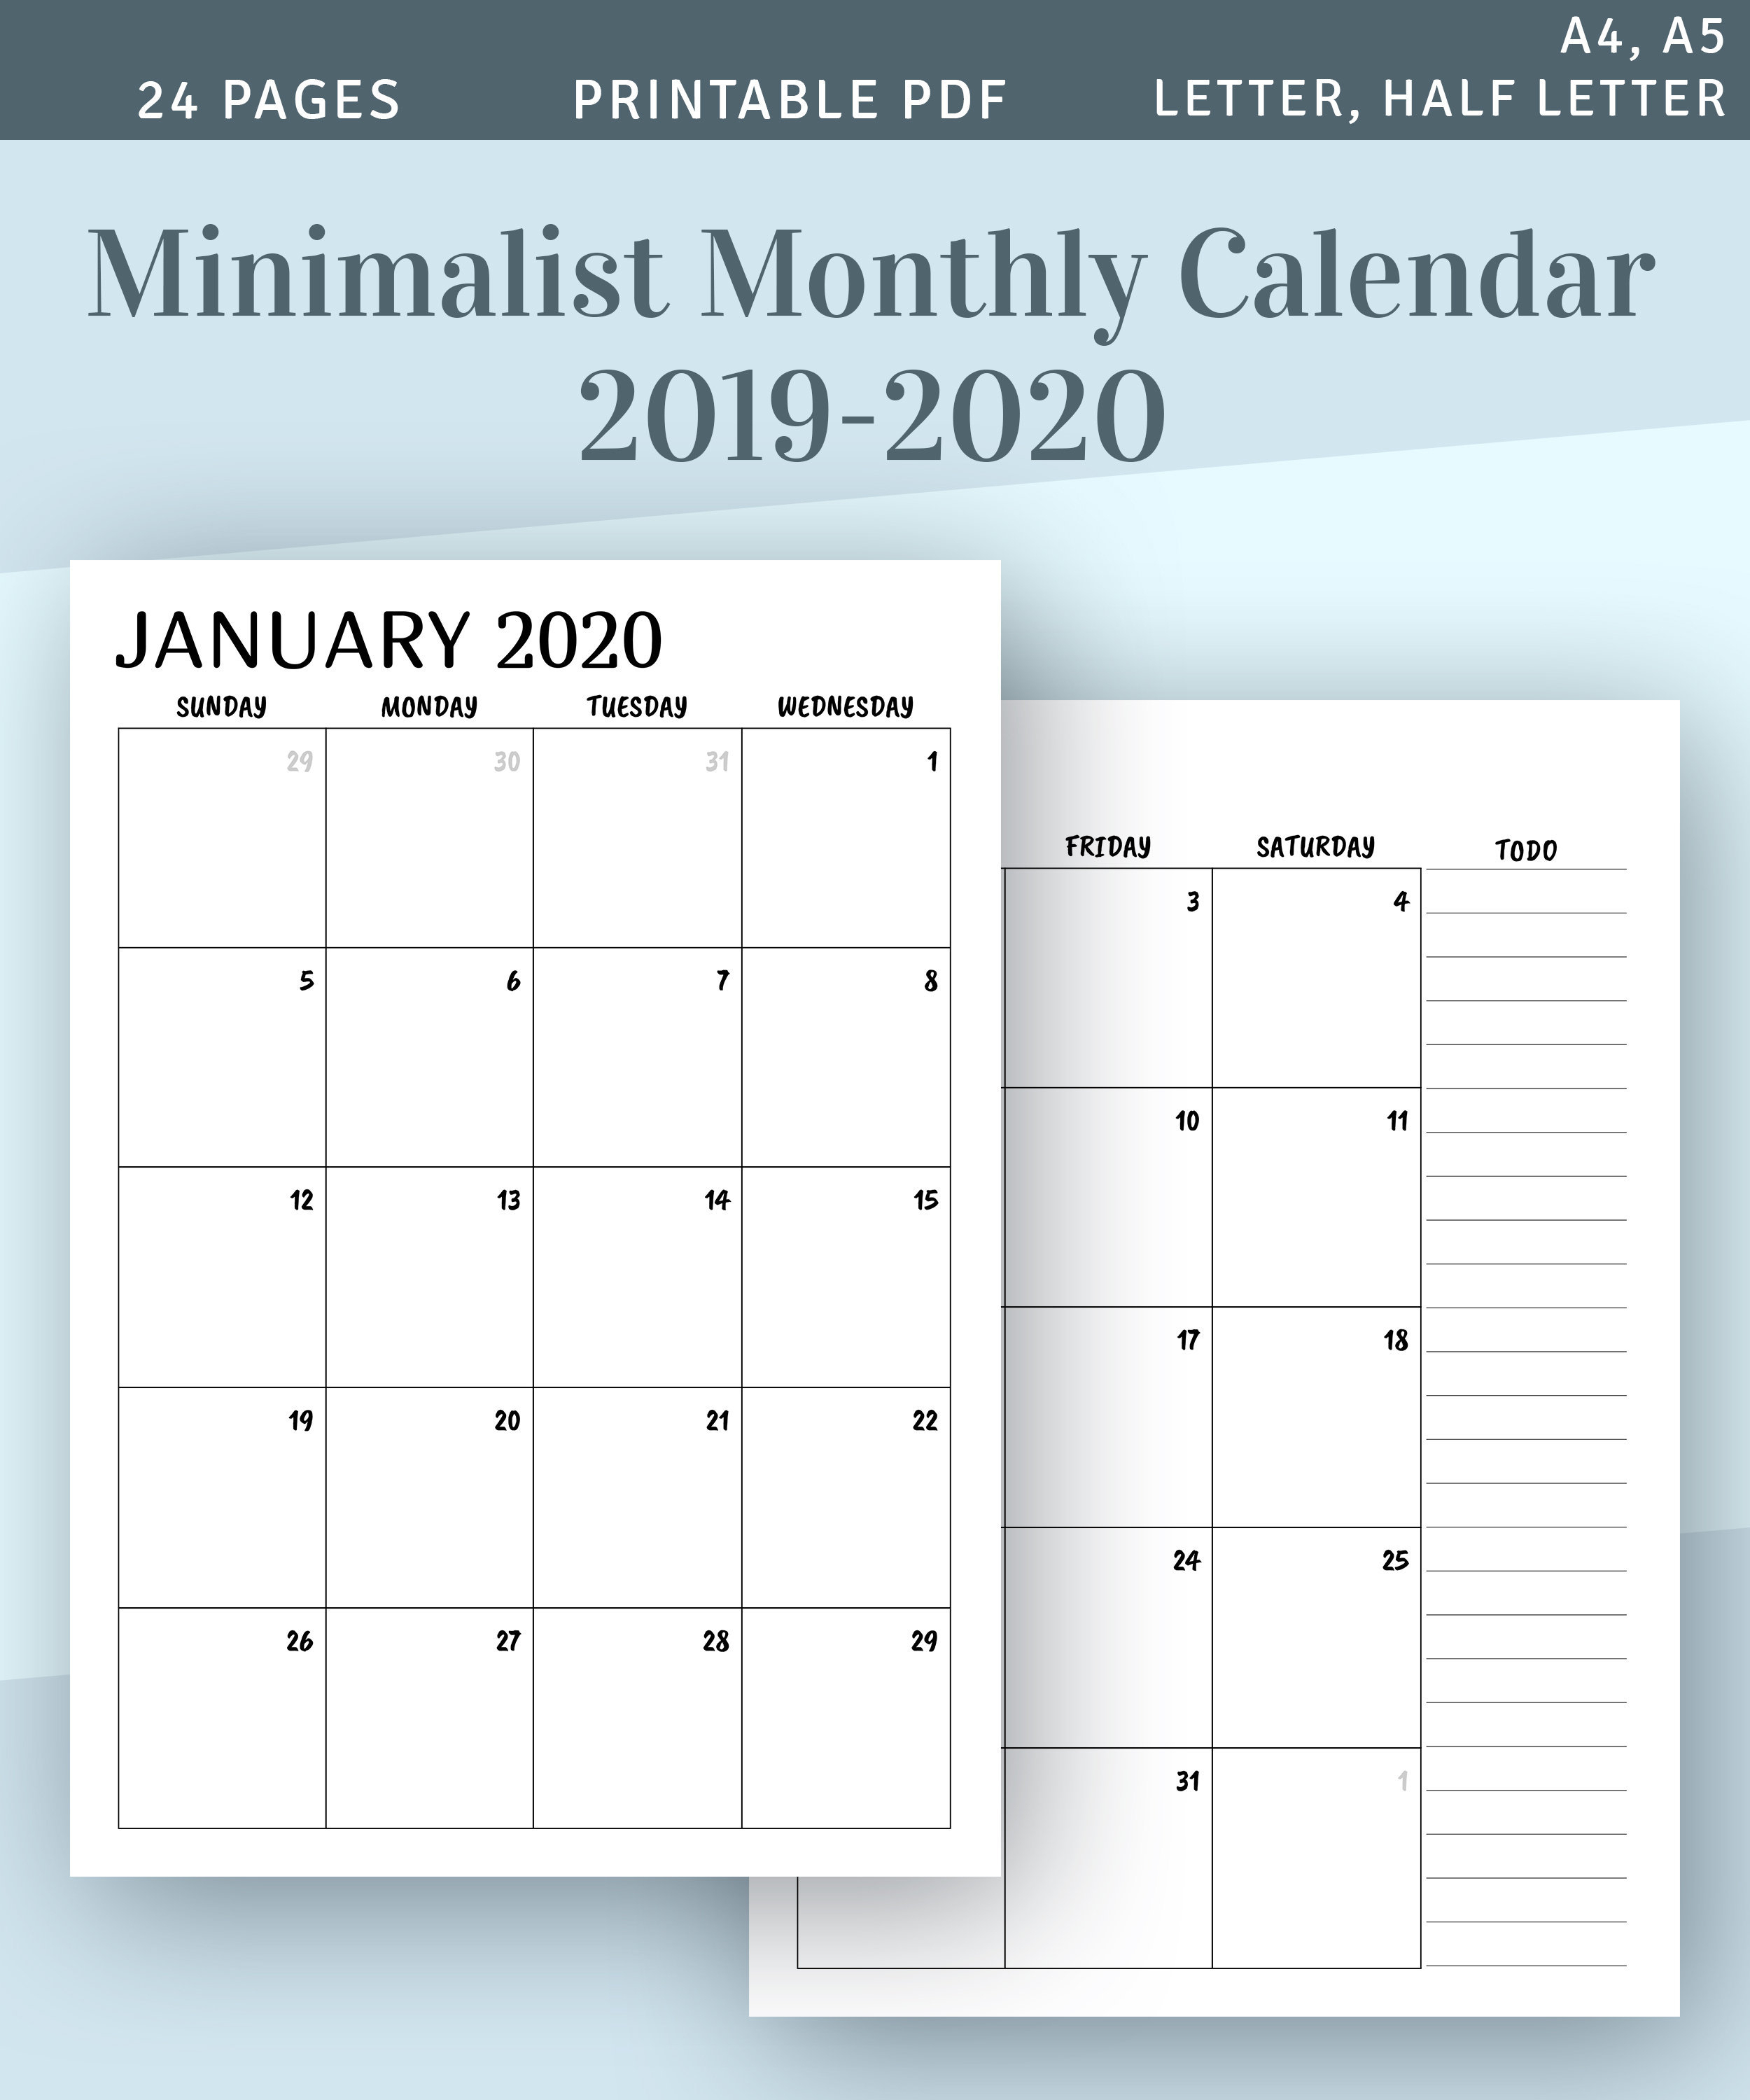 Printable Calendar Monthly 2019 2020, Month On Two Page Planner, Minimalist  Printable Monthly Calendar Template, Year Calendar Pdf Insert in Monthly Printable Calendars 2020 Half Page